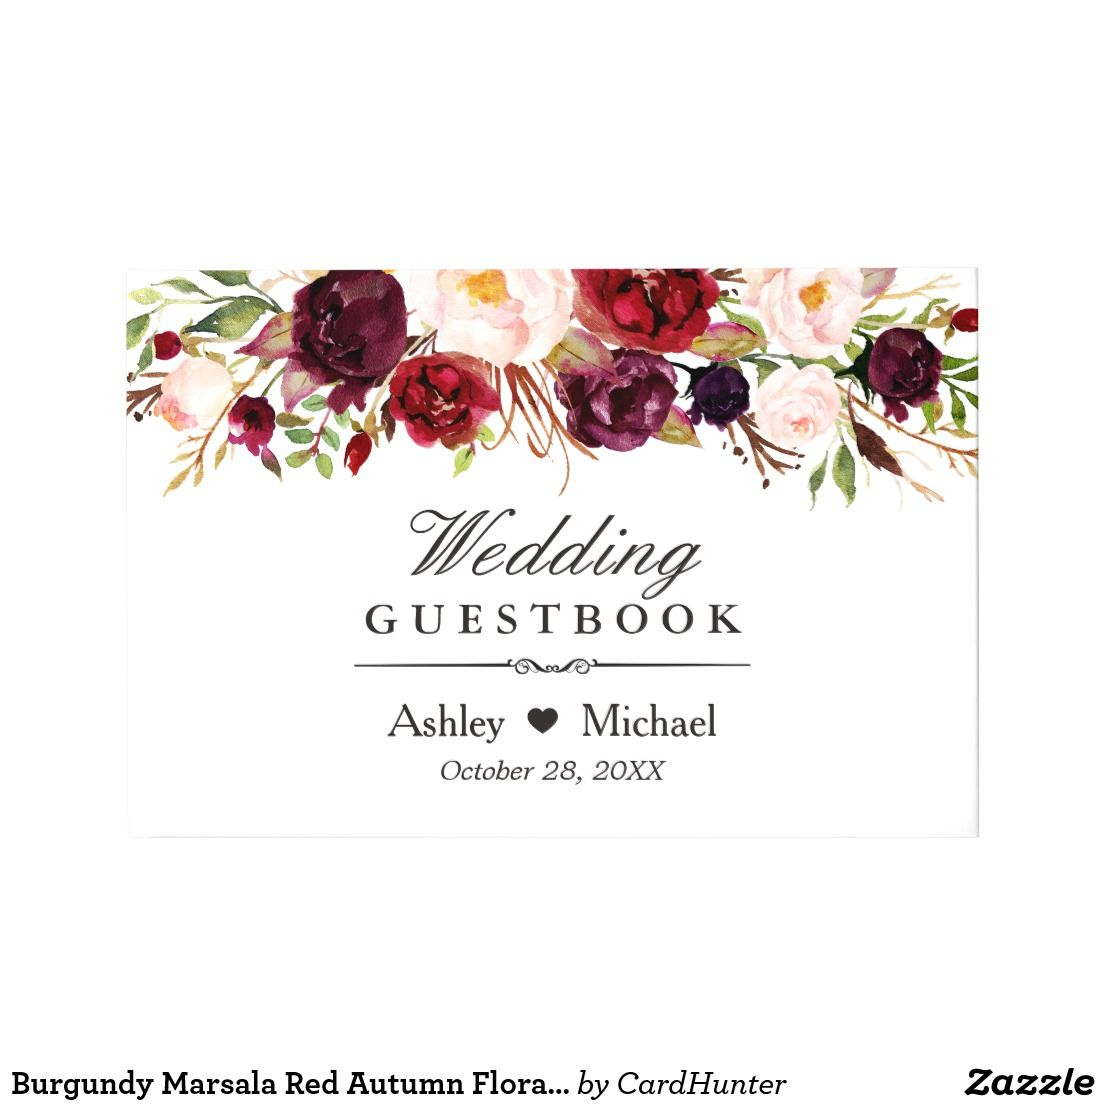 Burgundy Marsala Red Autumn Floral Wedding Guest Book | Floral ...